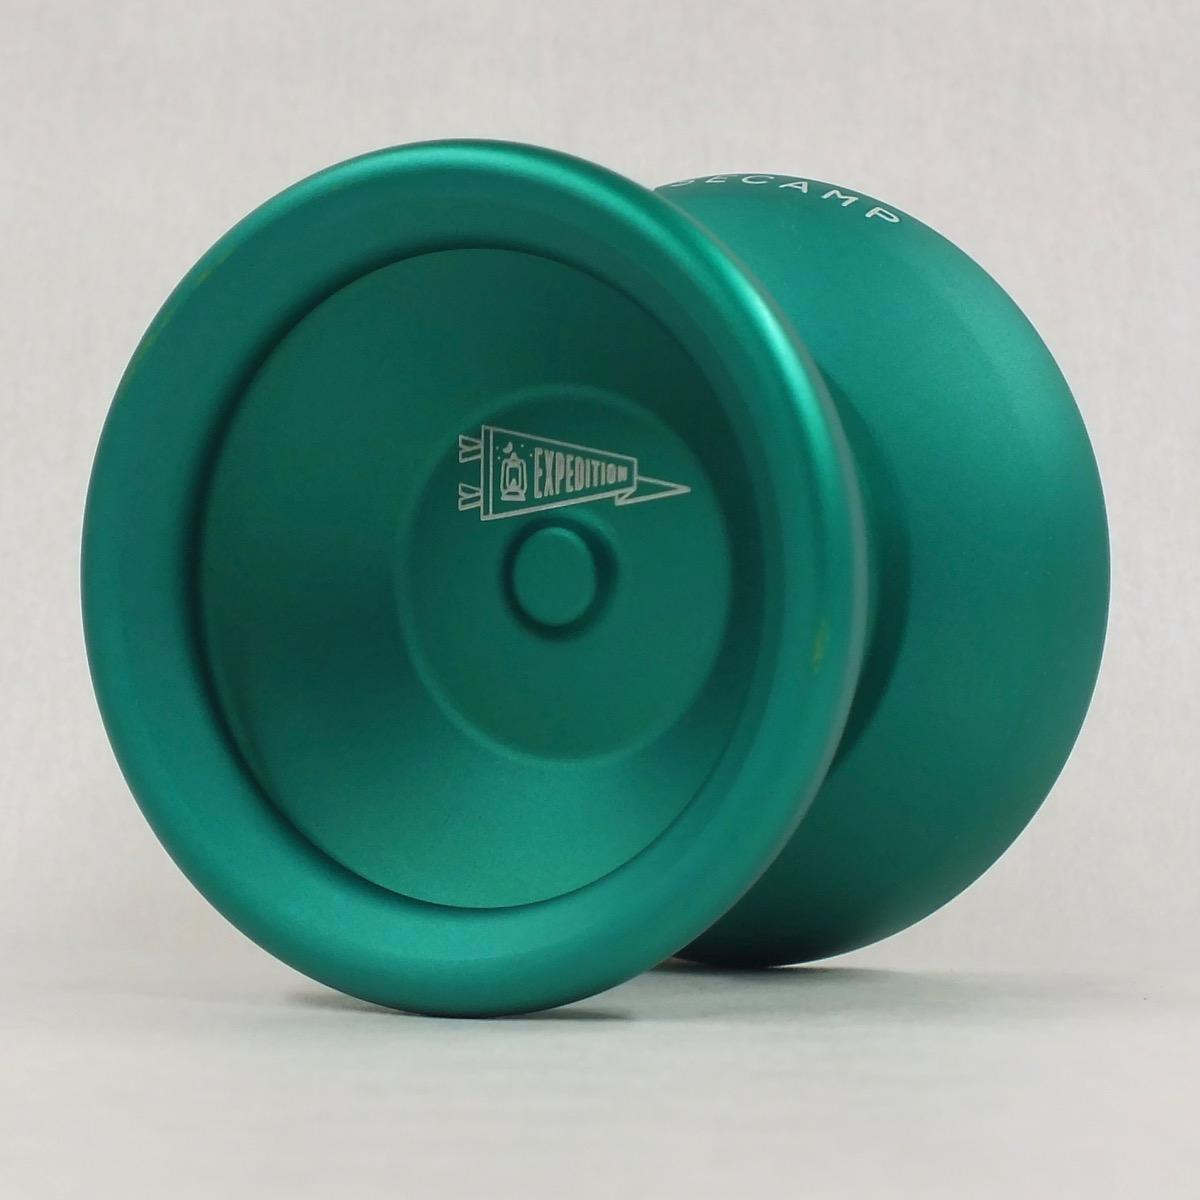 YoYoFactory X CLYW Basecamp Expedition